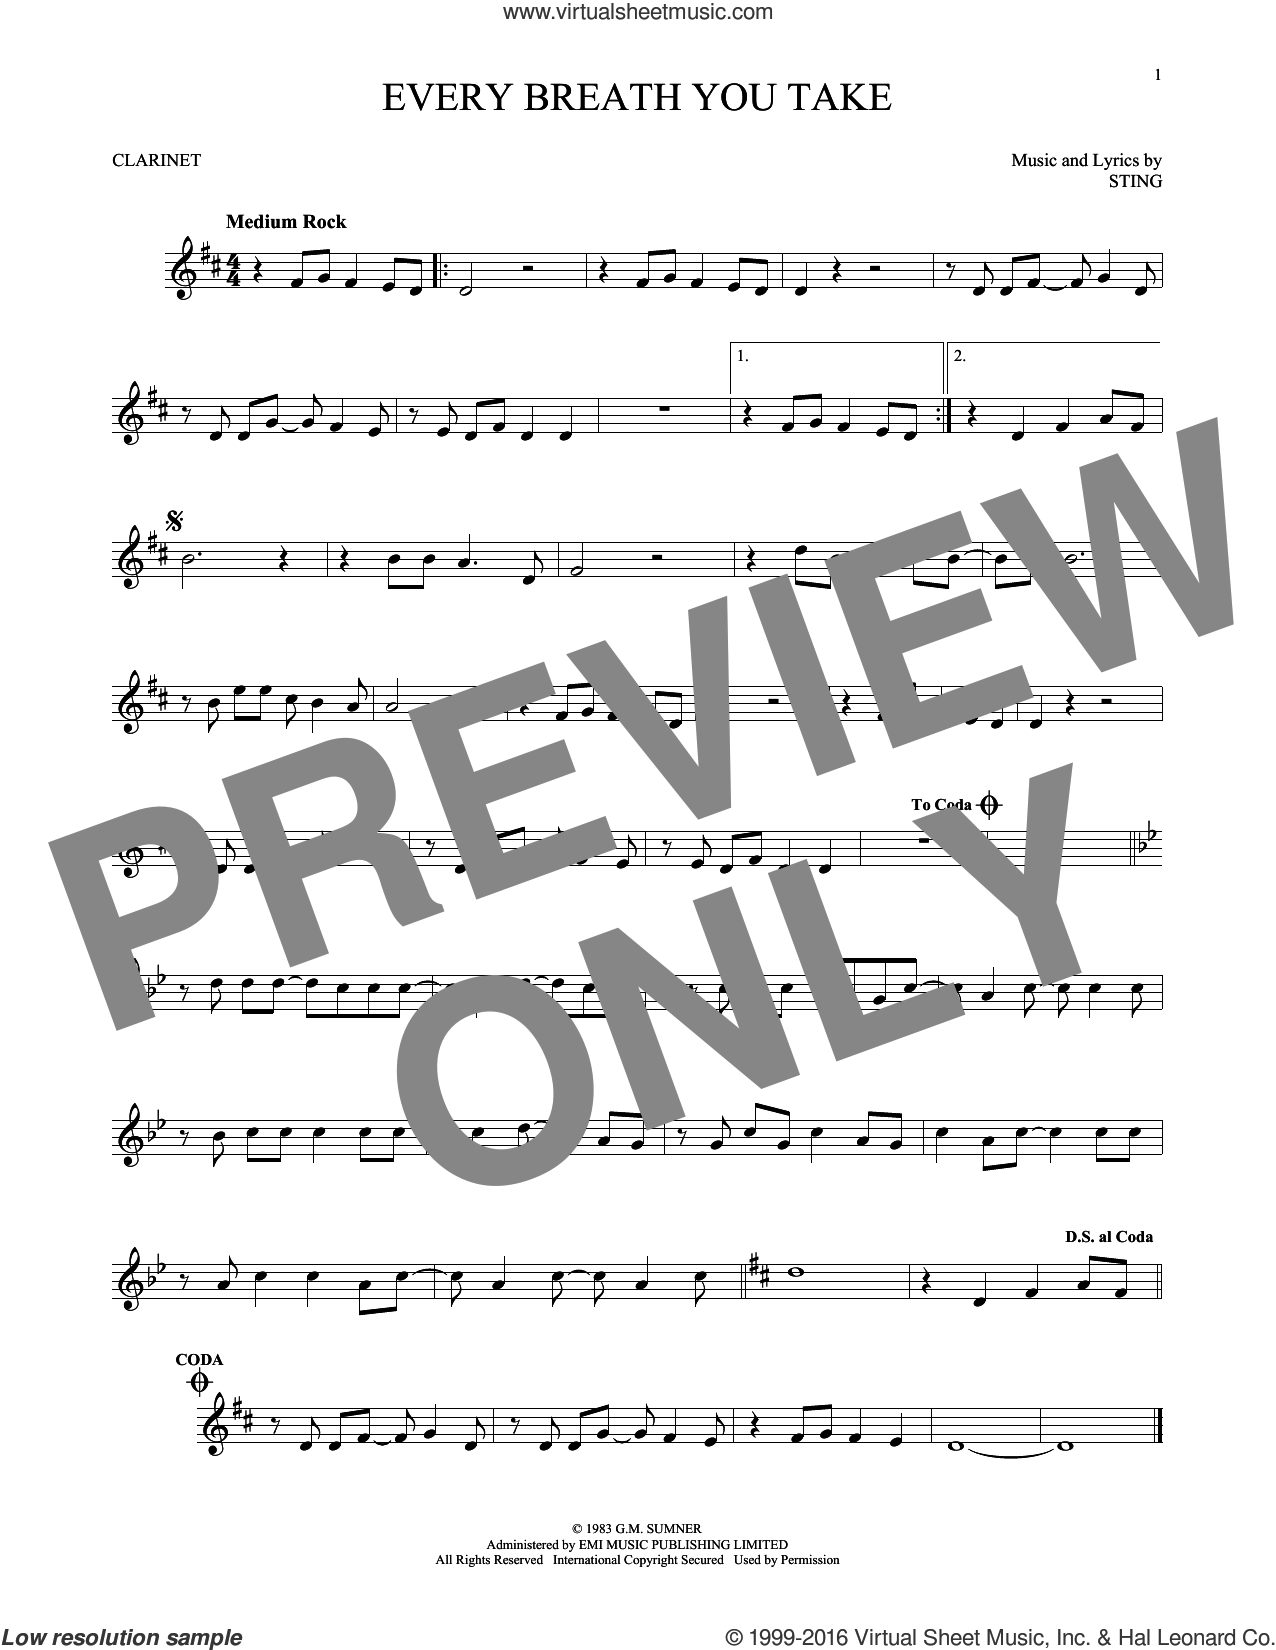 Every Breath You Take sheet music for clarinet solo by The Police and Sting, intermediate skill level